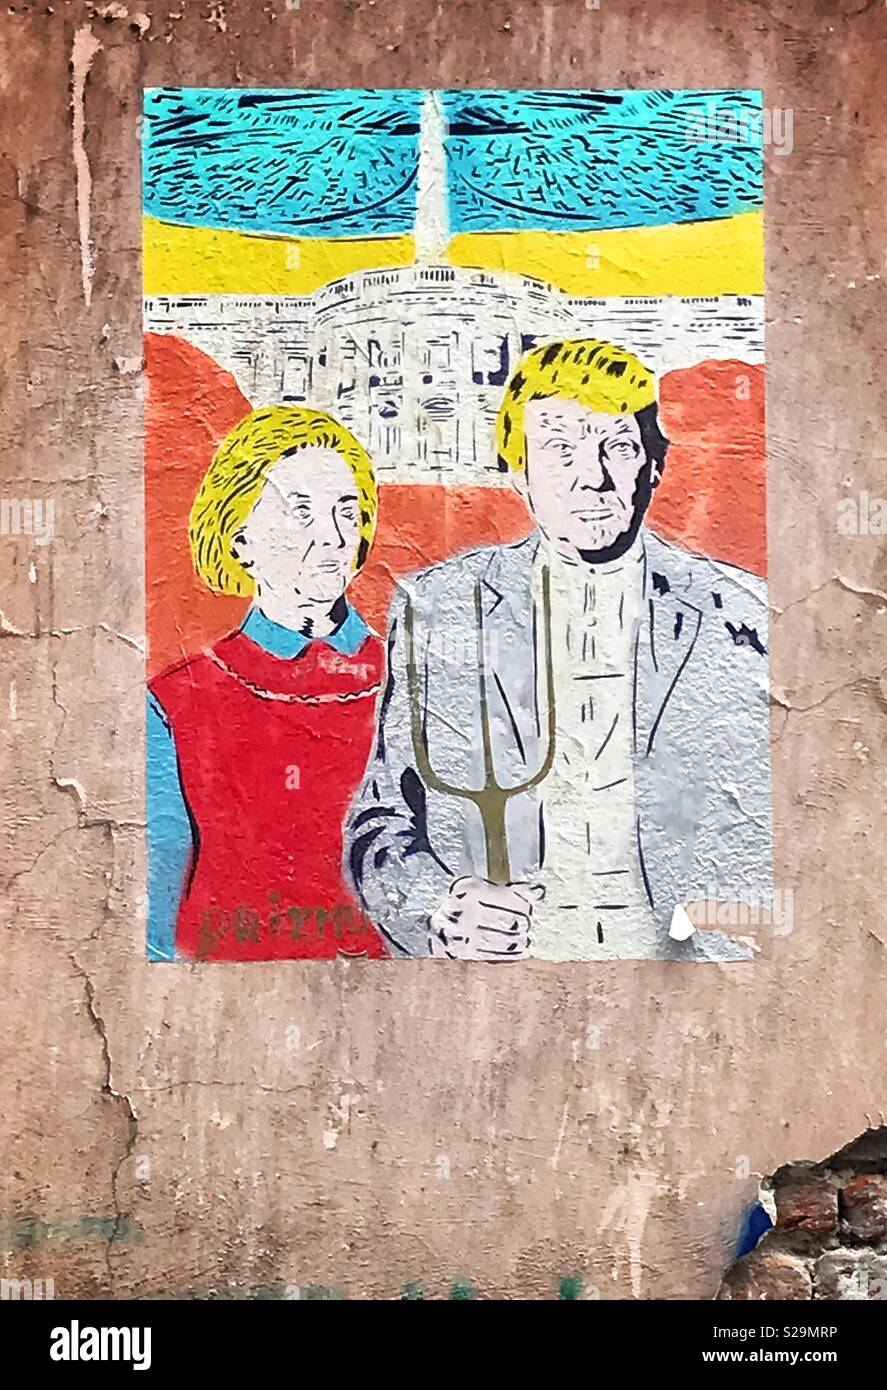 Spoof Poster Art Depicting Hillary Clinton And Donald Trump As The Couple In Iconic Painting